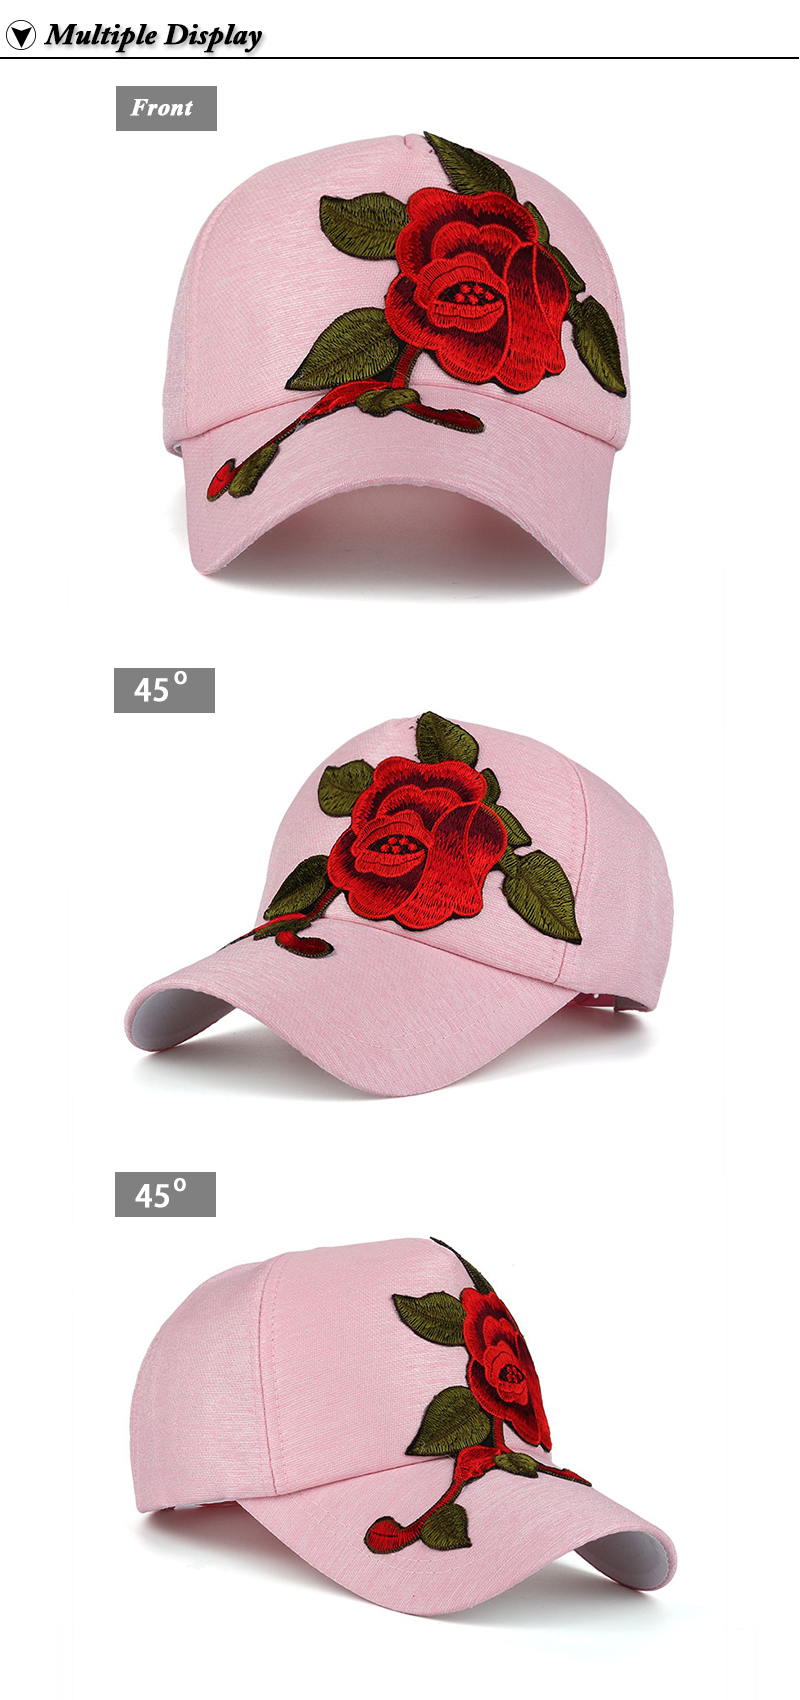 Large Flower Embroidered Snapback Cap - Front and Left and Right Front Angle Views